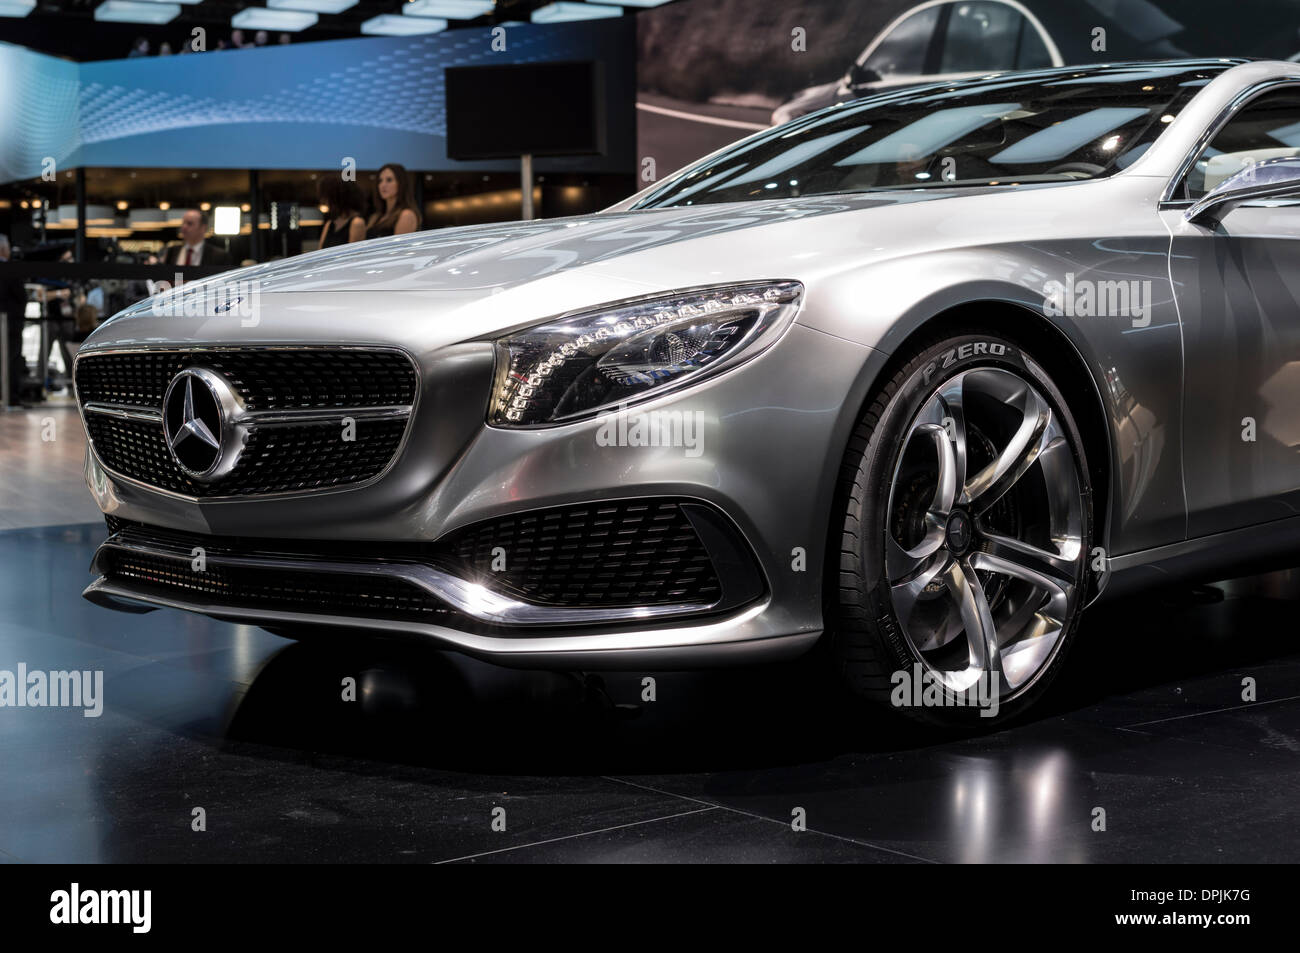 Detroit, Michigan, USA. 13th January 2014. Mercedes-Benz S-Class Coupe Concept at the 2014 Detroit Auto Show Credit: - Stock Image